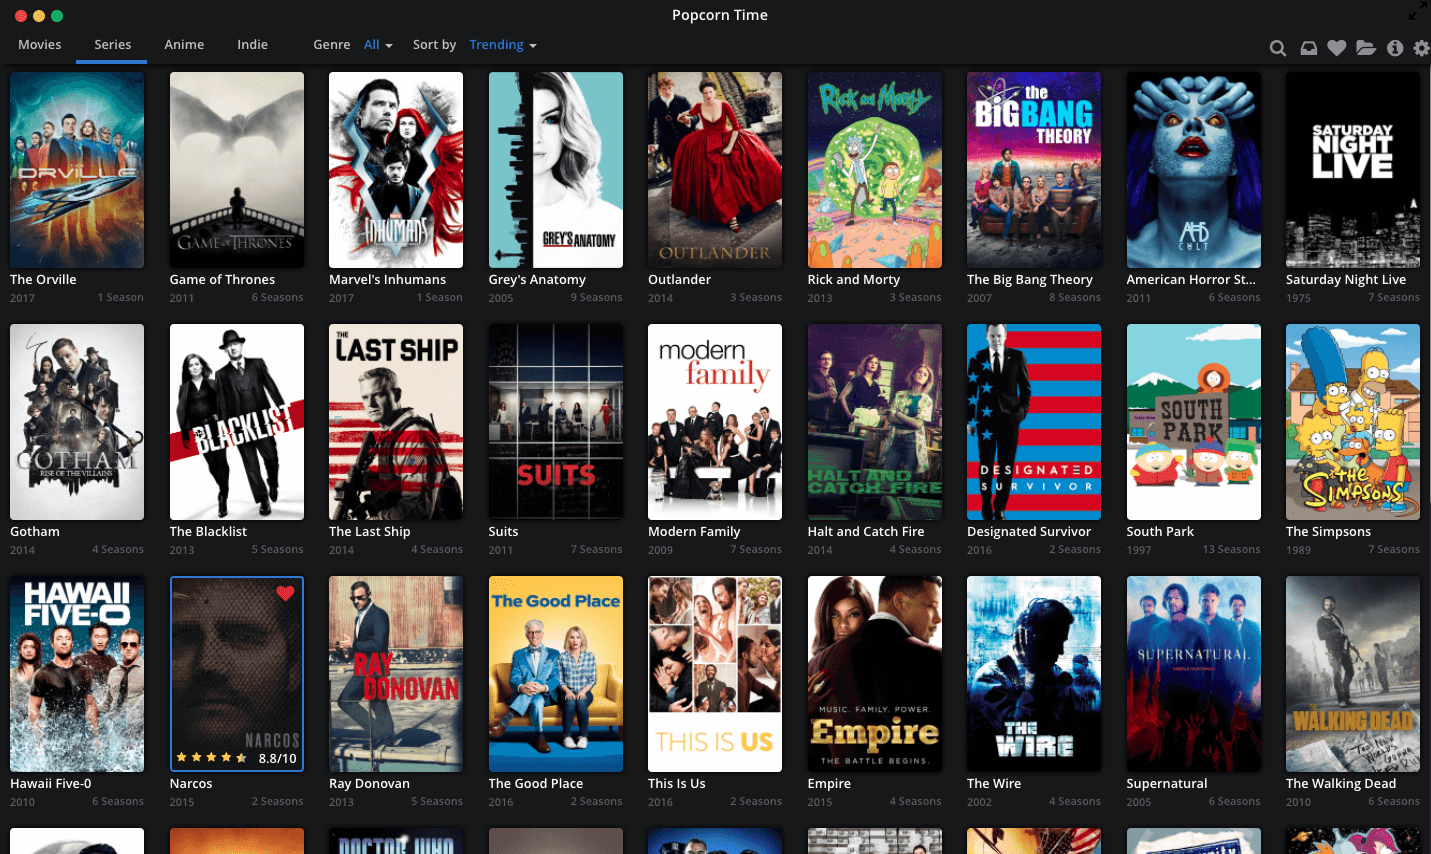 Popcorn time video pausing, resolve playback freezing